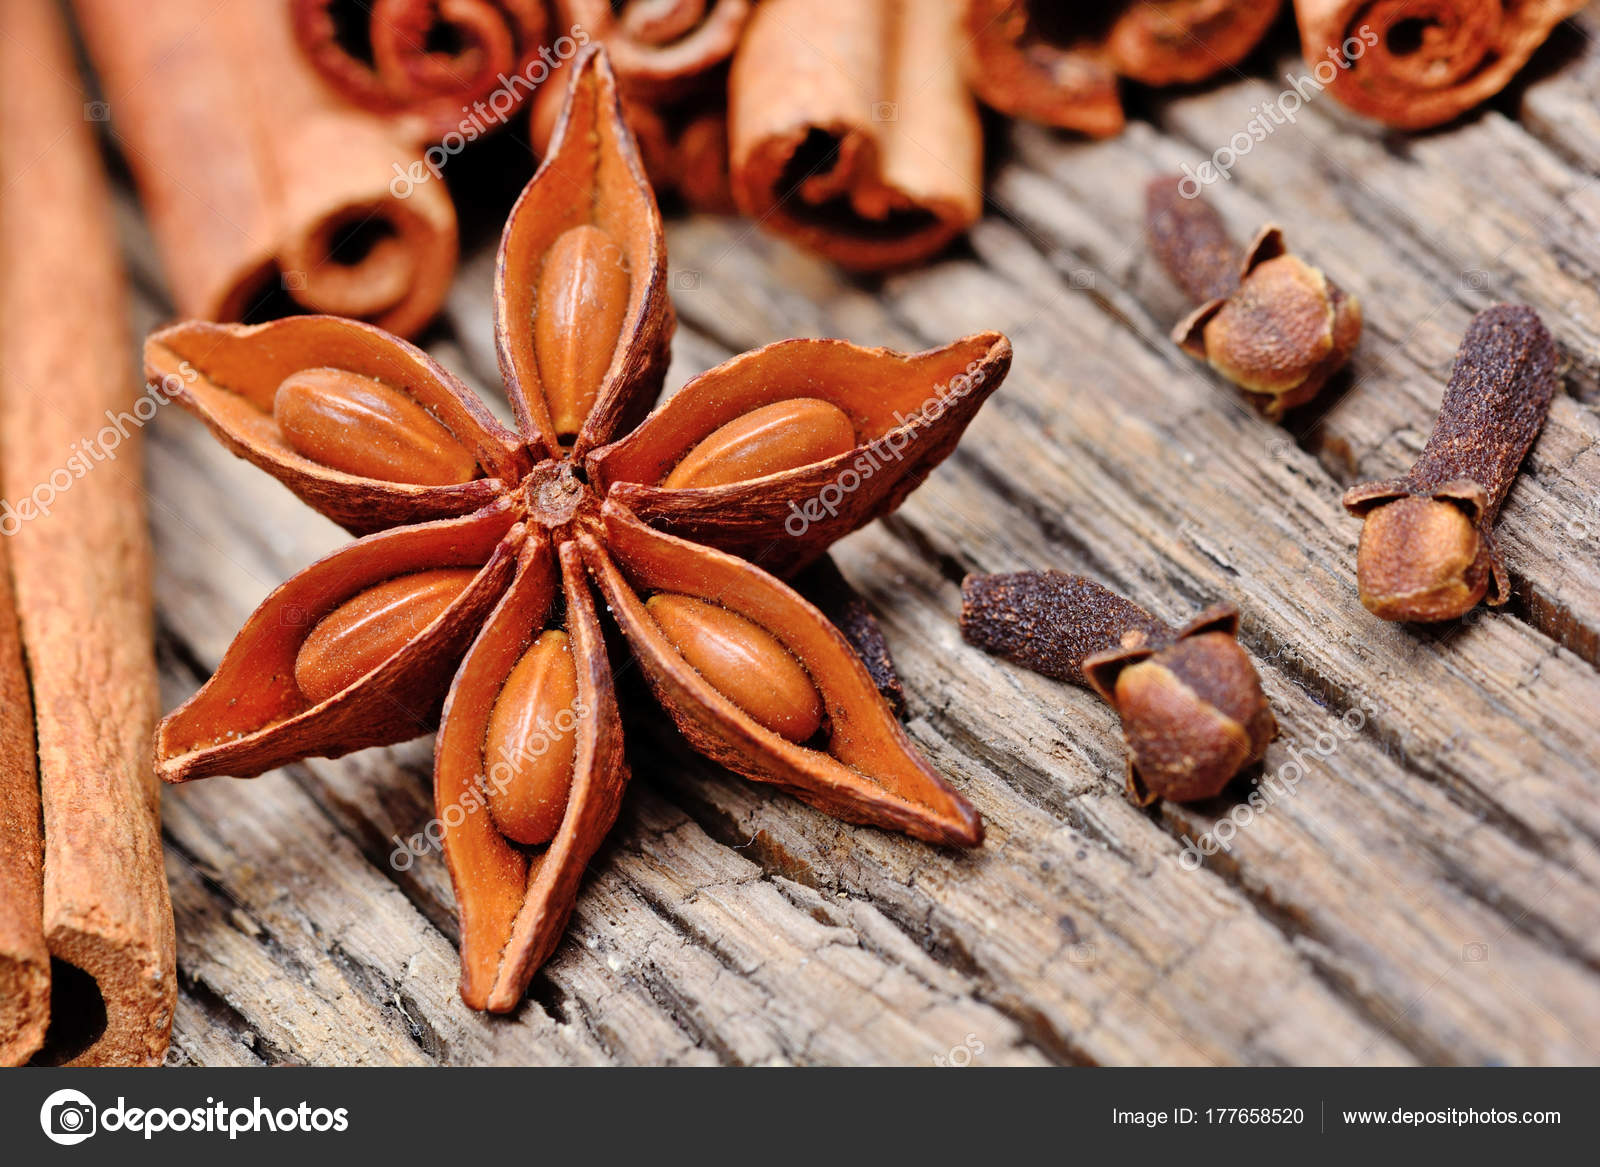 Anise Star With Cinnamon Sticks And Cloves On Rustic Wooden